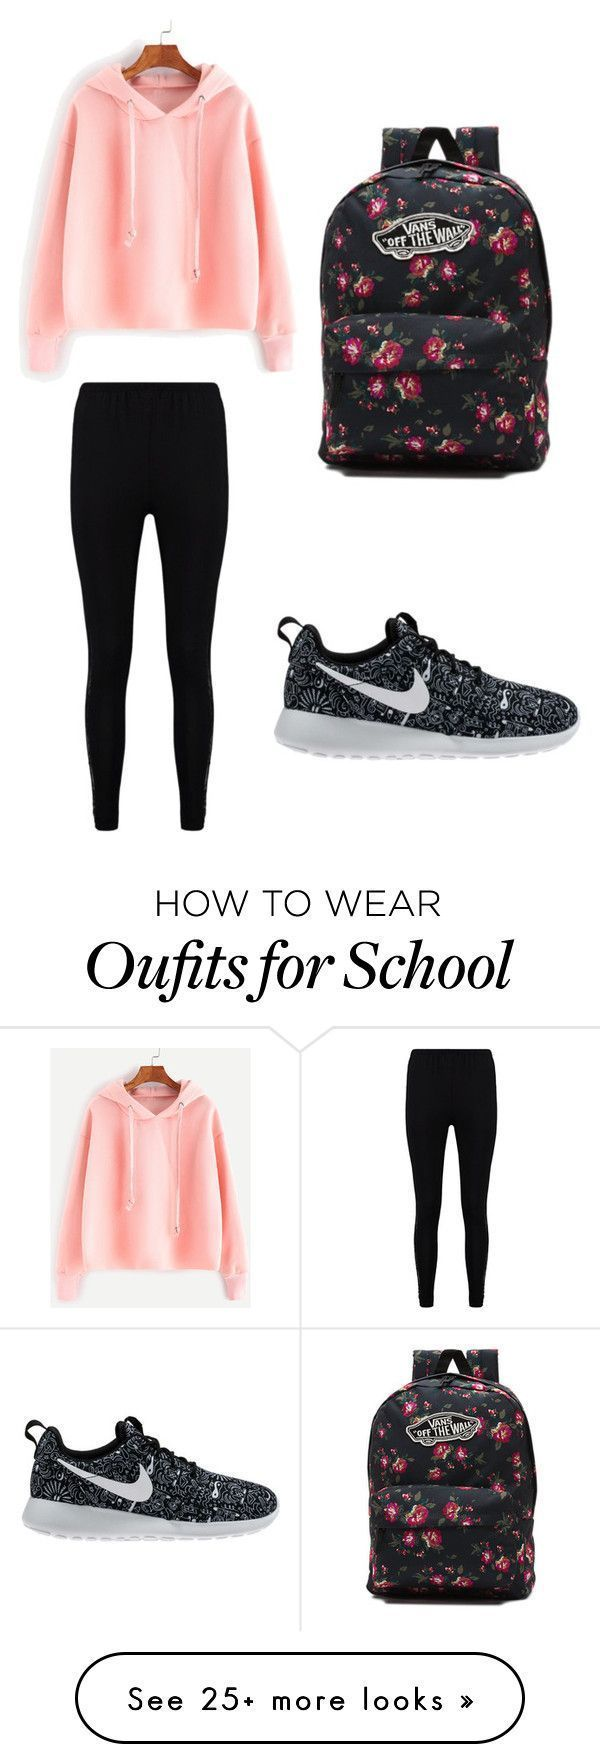 sporty outfits for teens to wear to school asap cuteteenoutfits